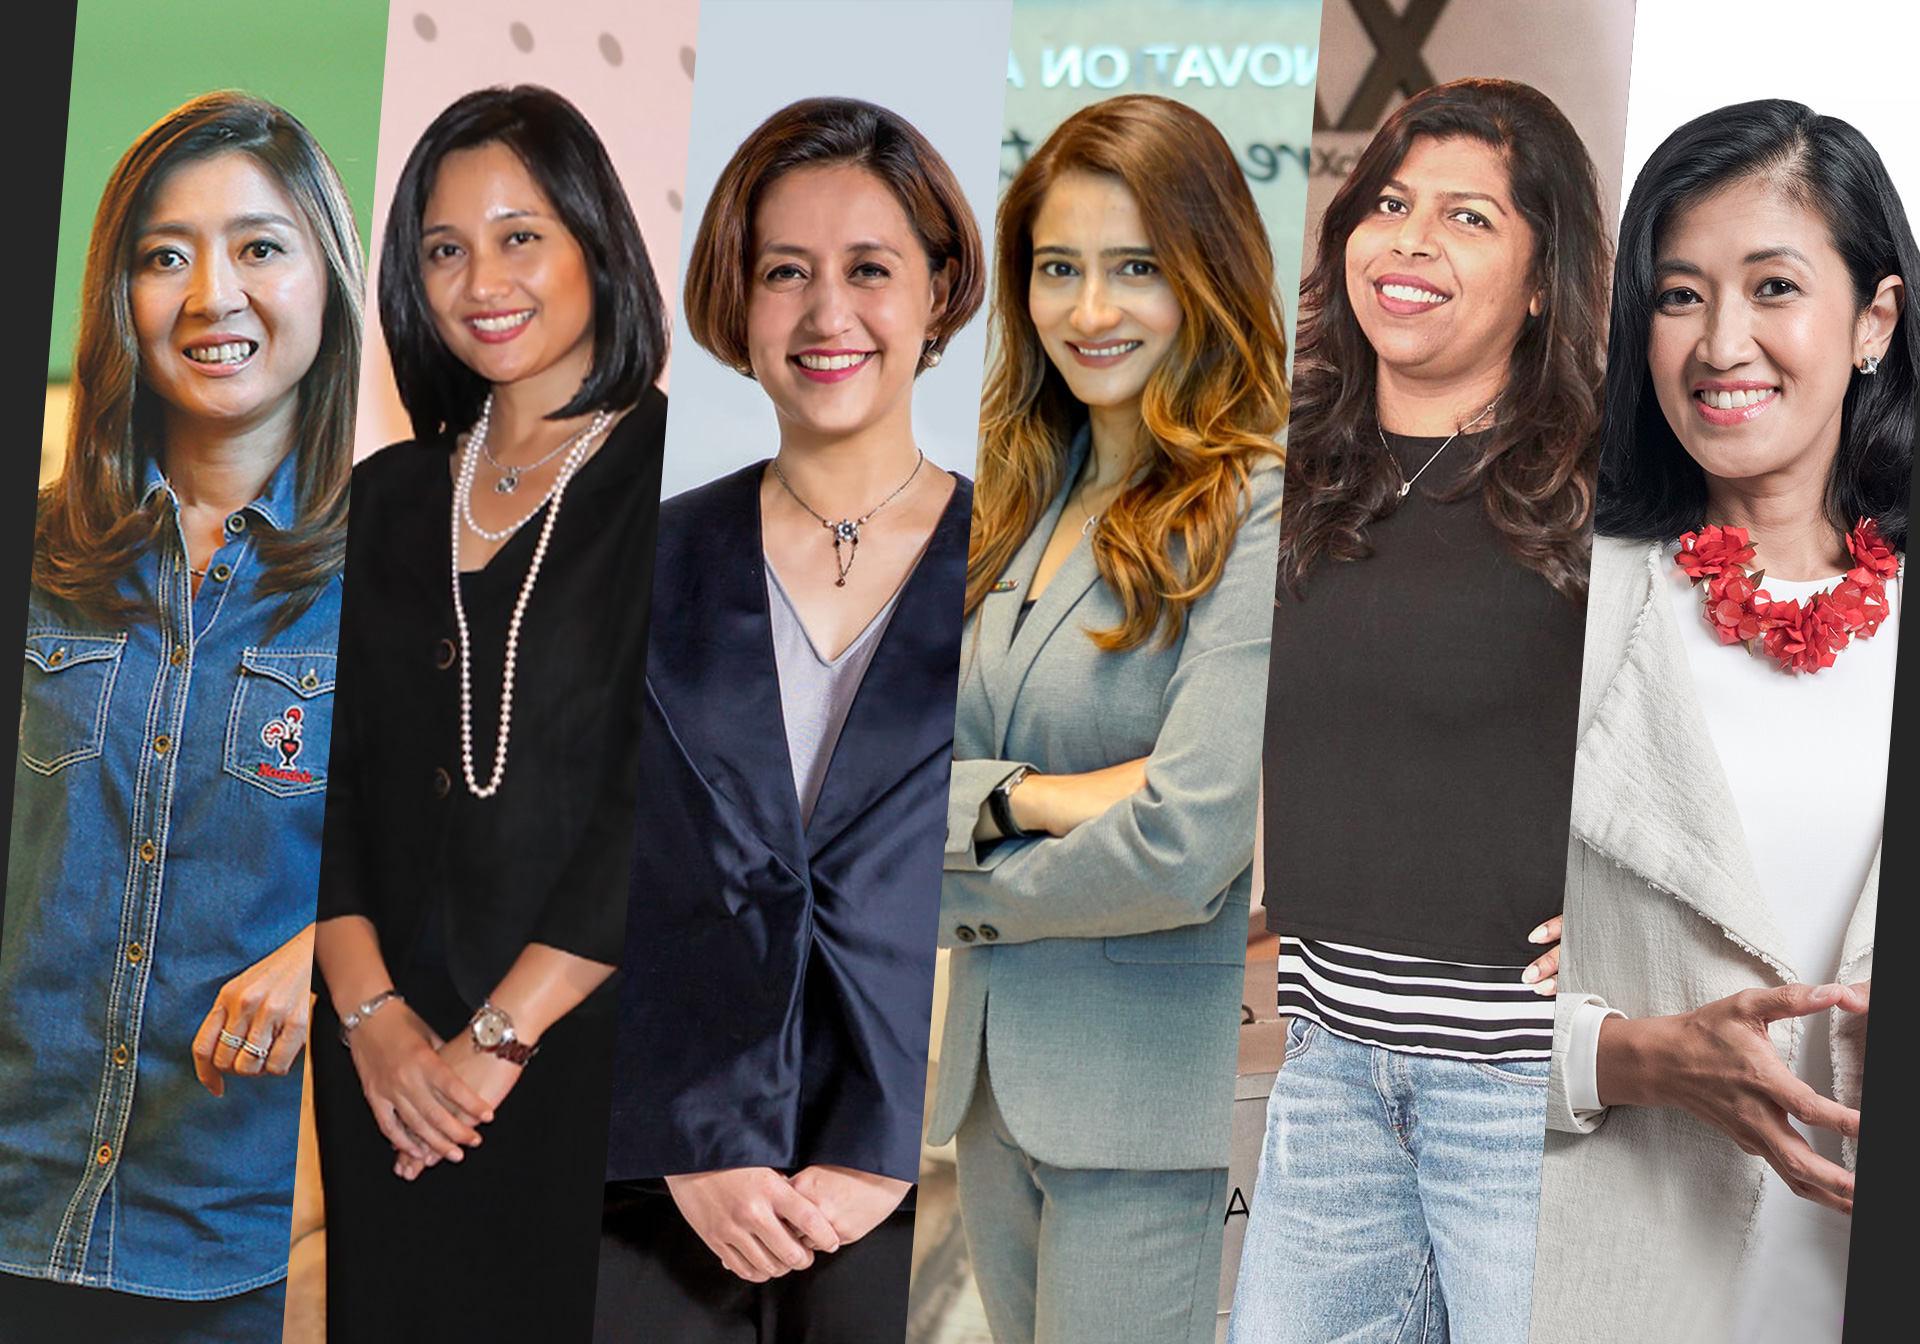 6 Malaysian Female Leaders You Should Know About